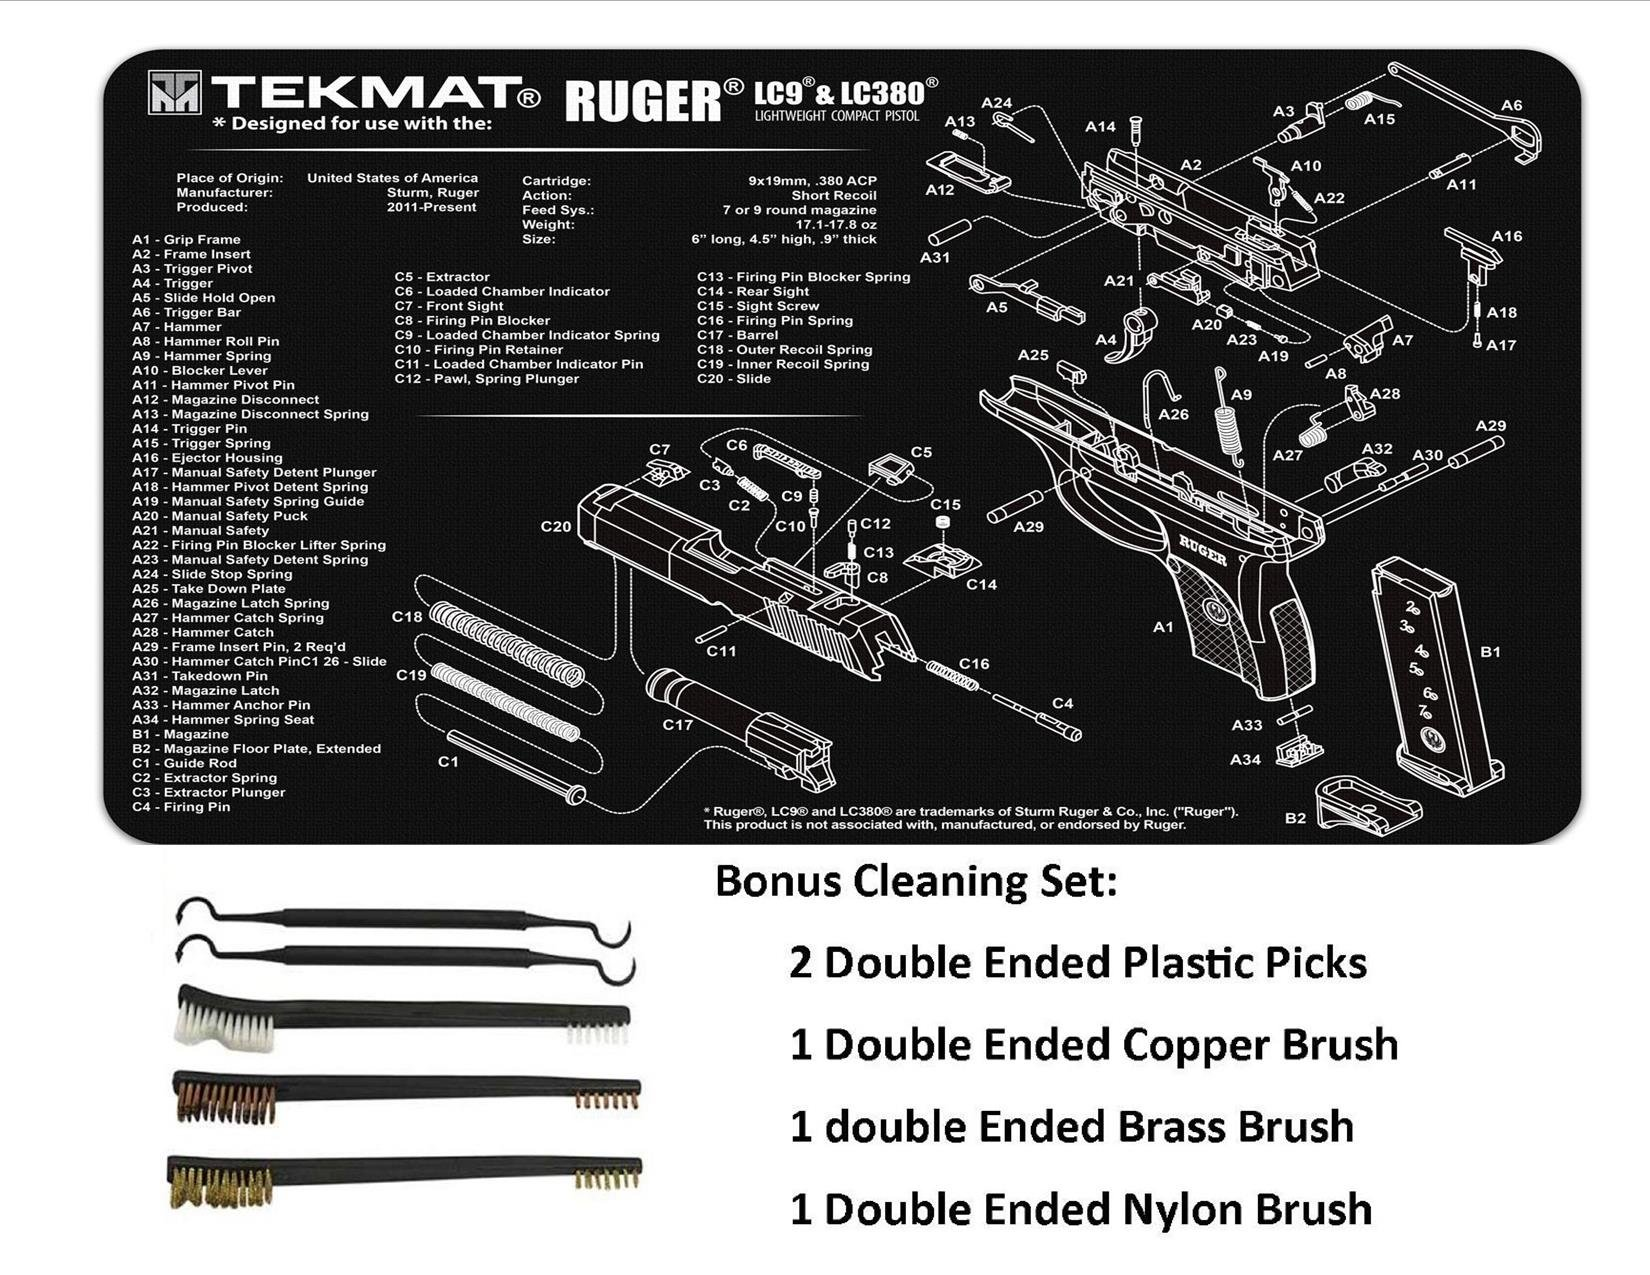 TekMat 11-Inch X 17-Inch Handgun Cleaning Mat with Ruger LC9 Imprint Bonus 5 oc Gun Cleaning Brush & Pick Set by EDOG (Image #3)